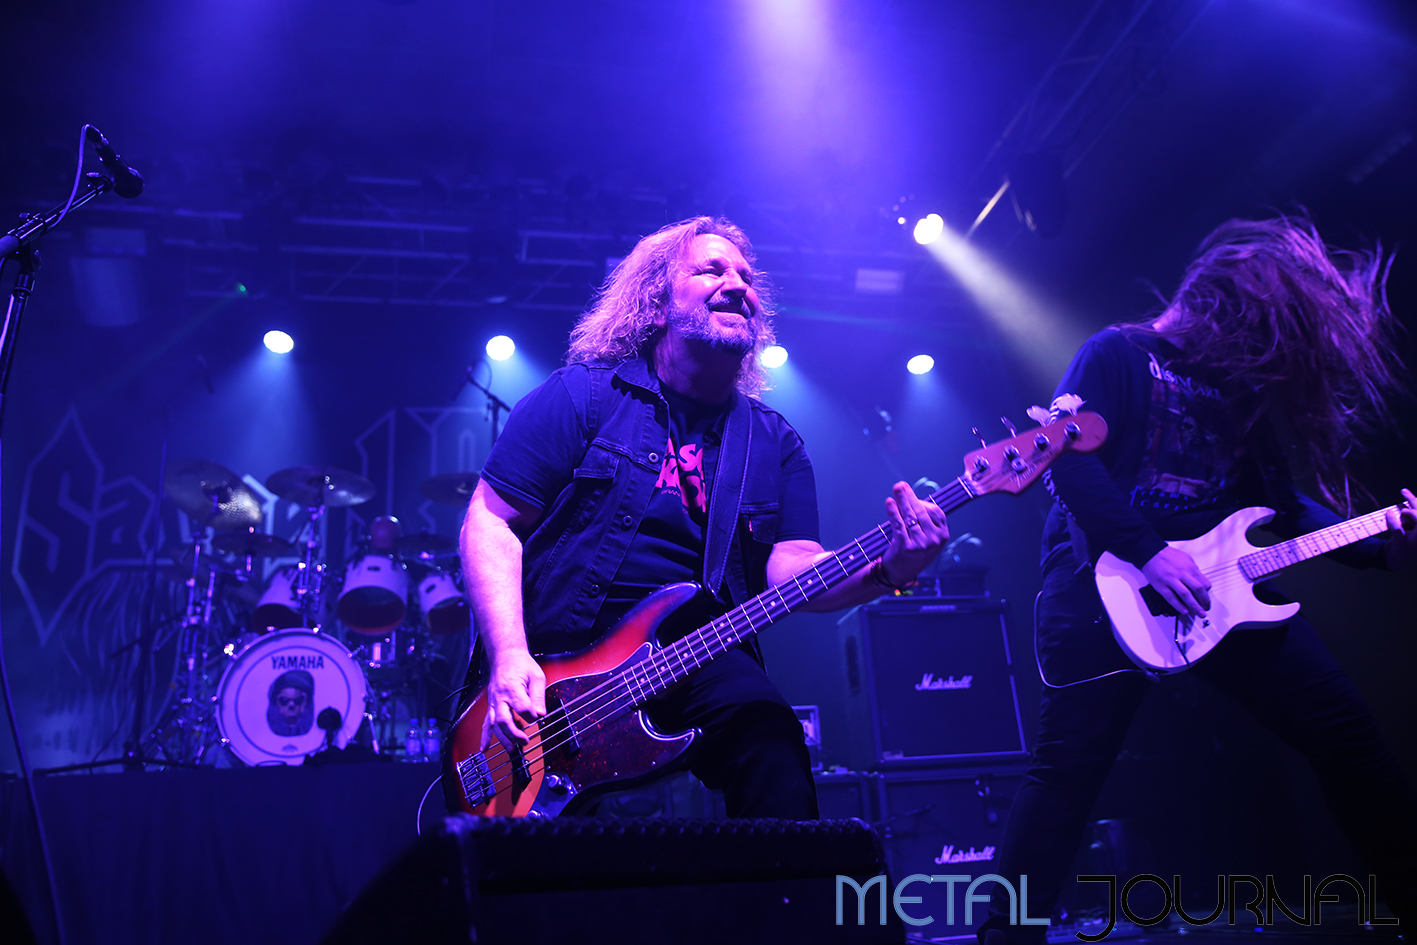 sacred reich - metal journal 2019 pic 11